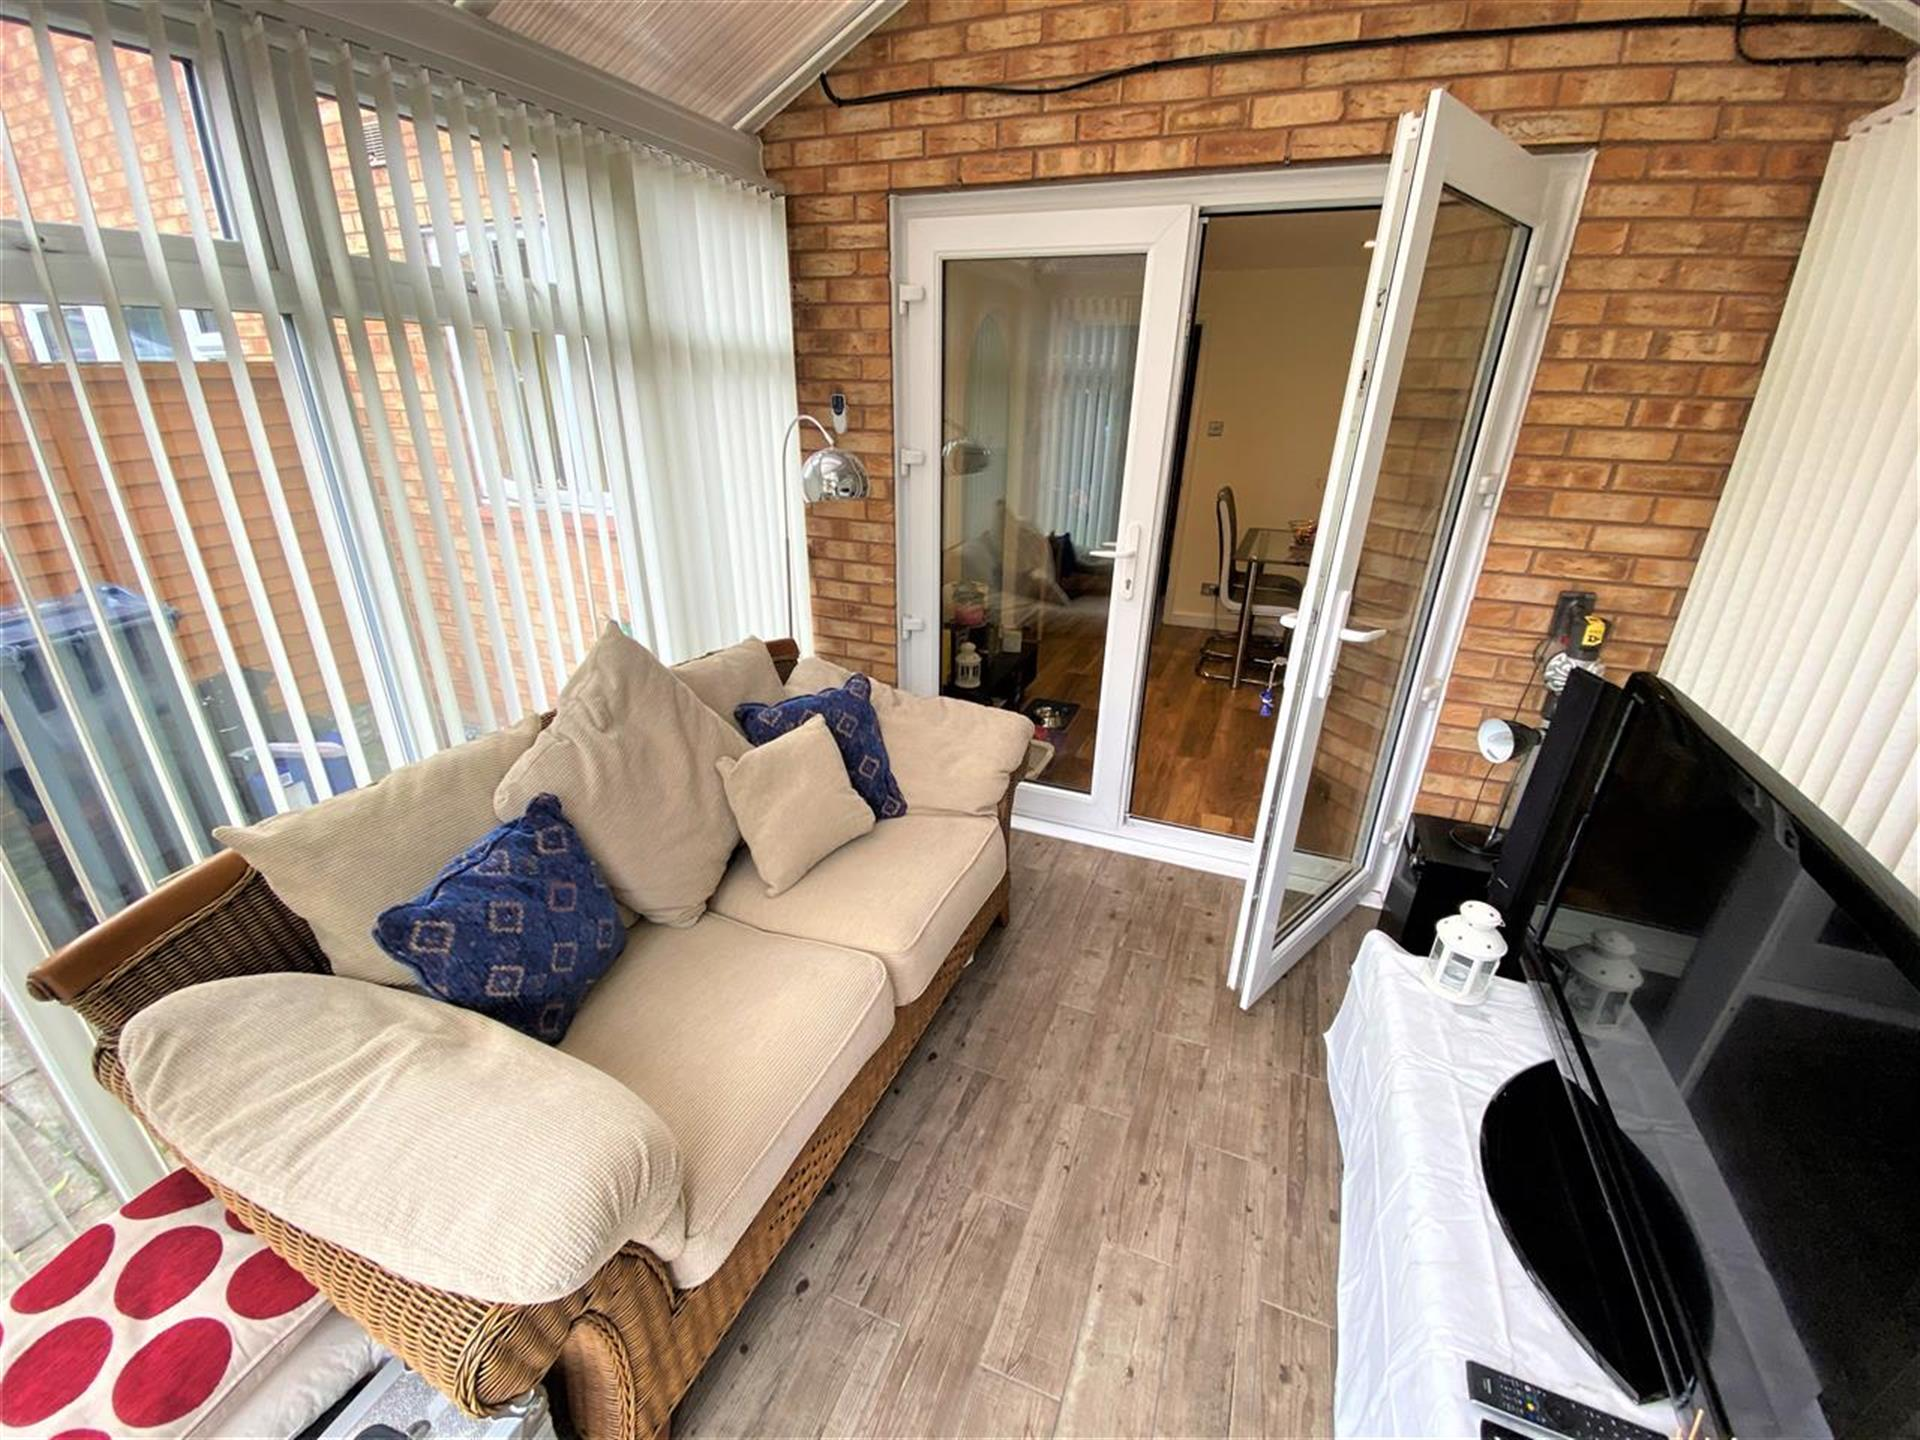 3 Bedroom End Terraced House For Sale - Conservatory